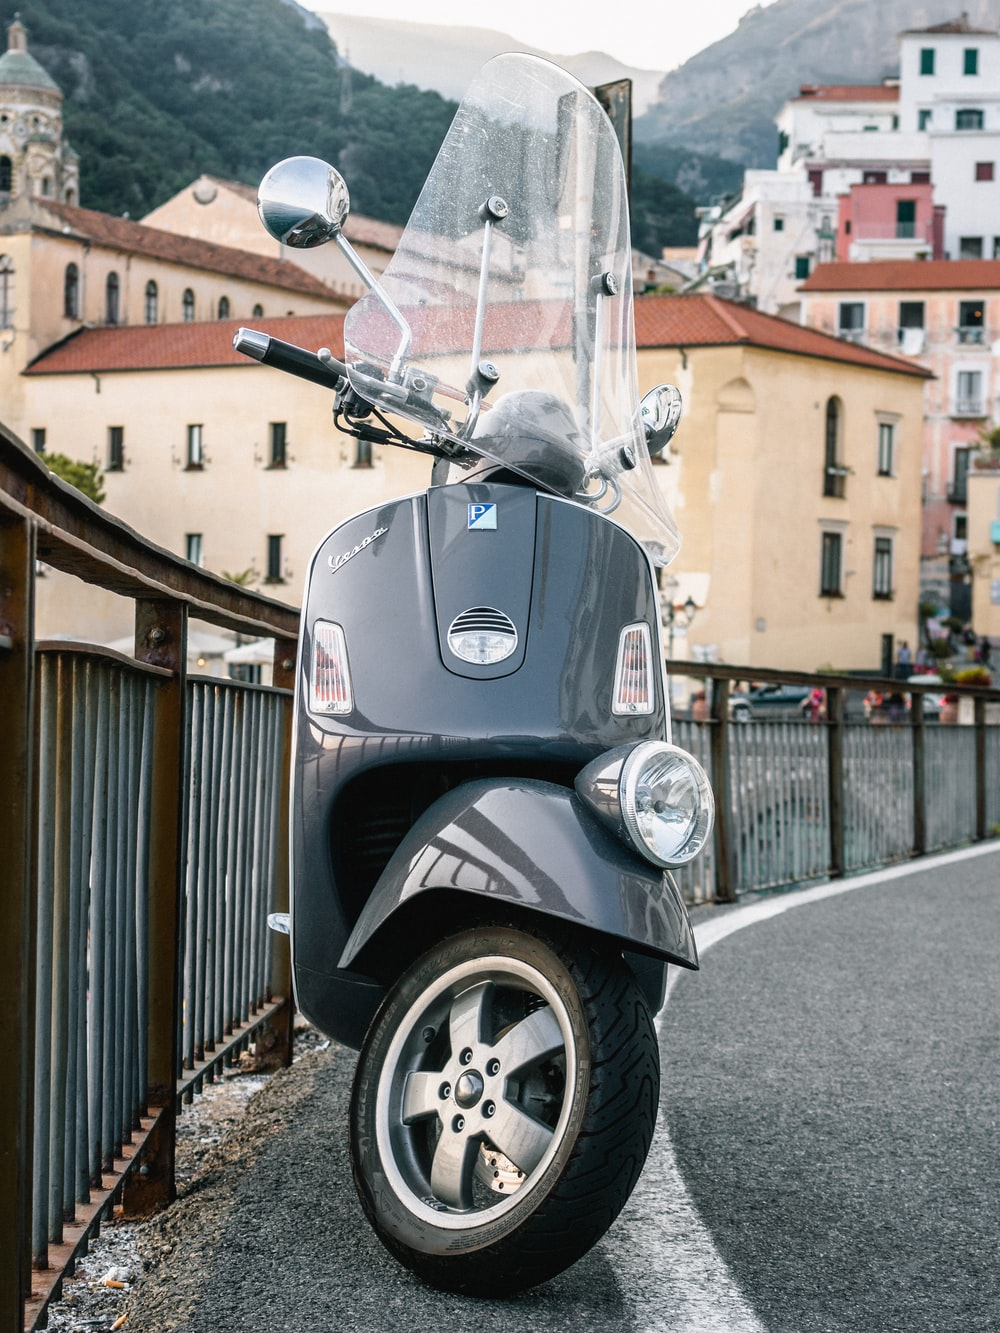 gray motor scooter parked on the street